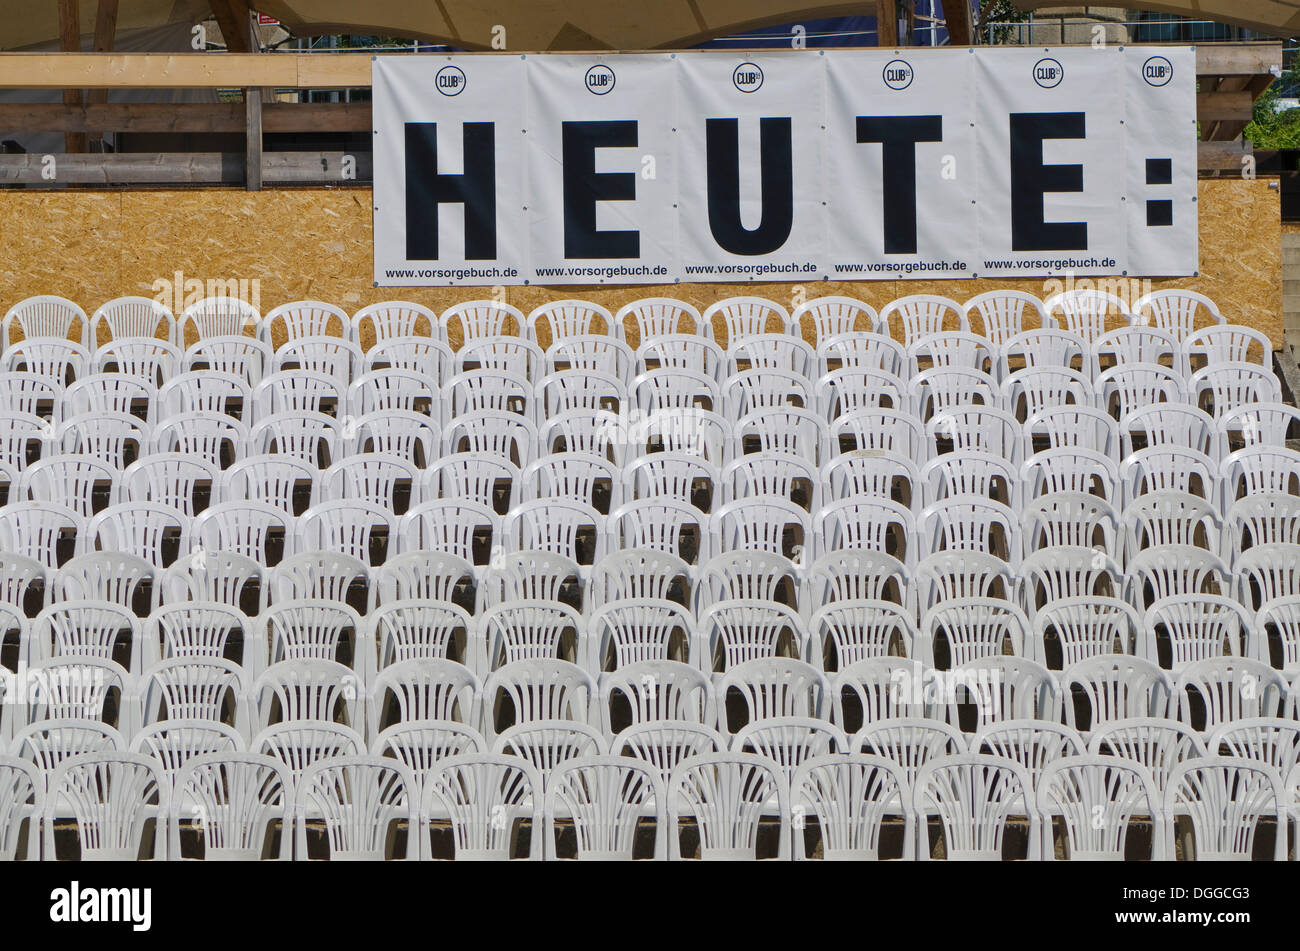 Sign 'heute', German for 'today', and white plastic chairs arranged in rows at an open air concert area, Dresden - Stock Image